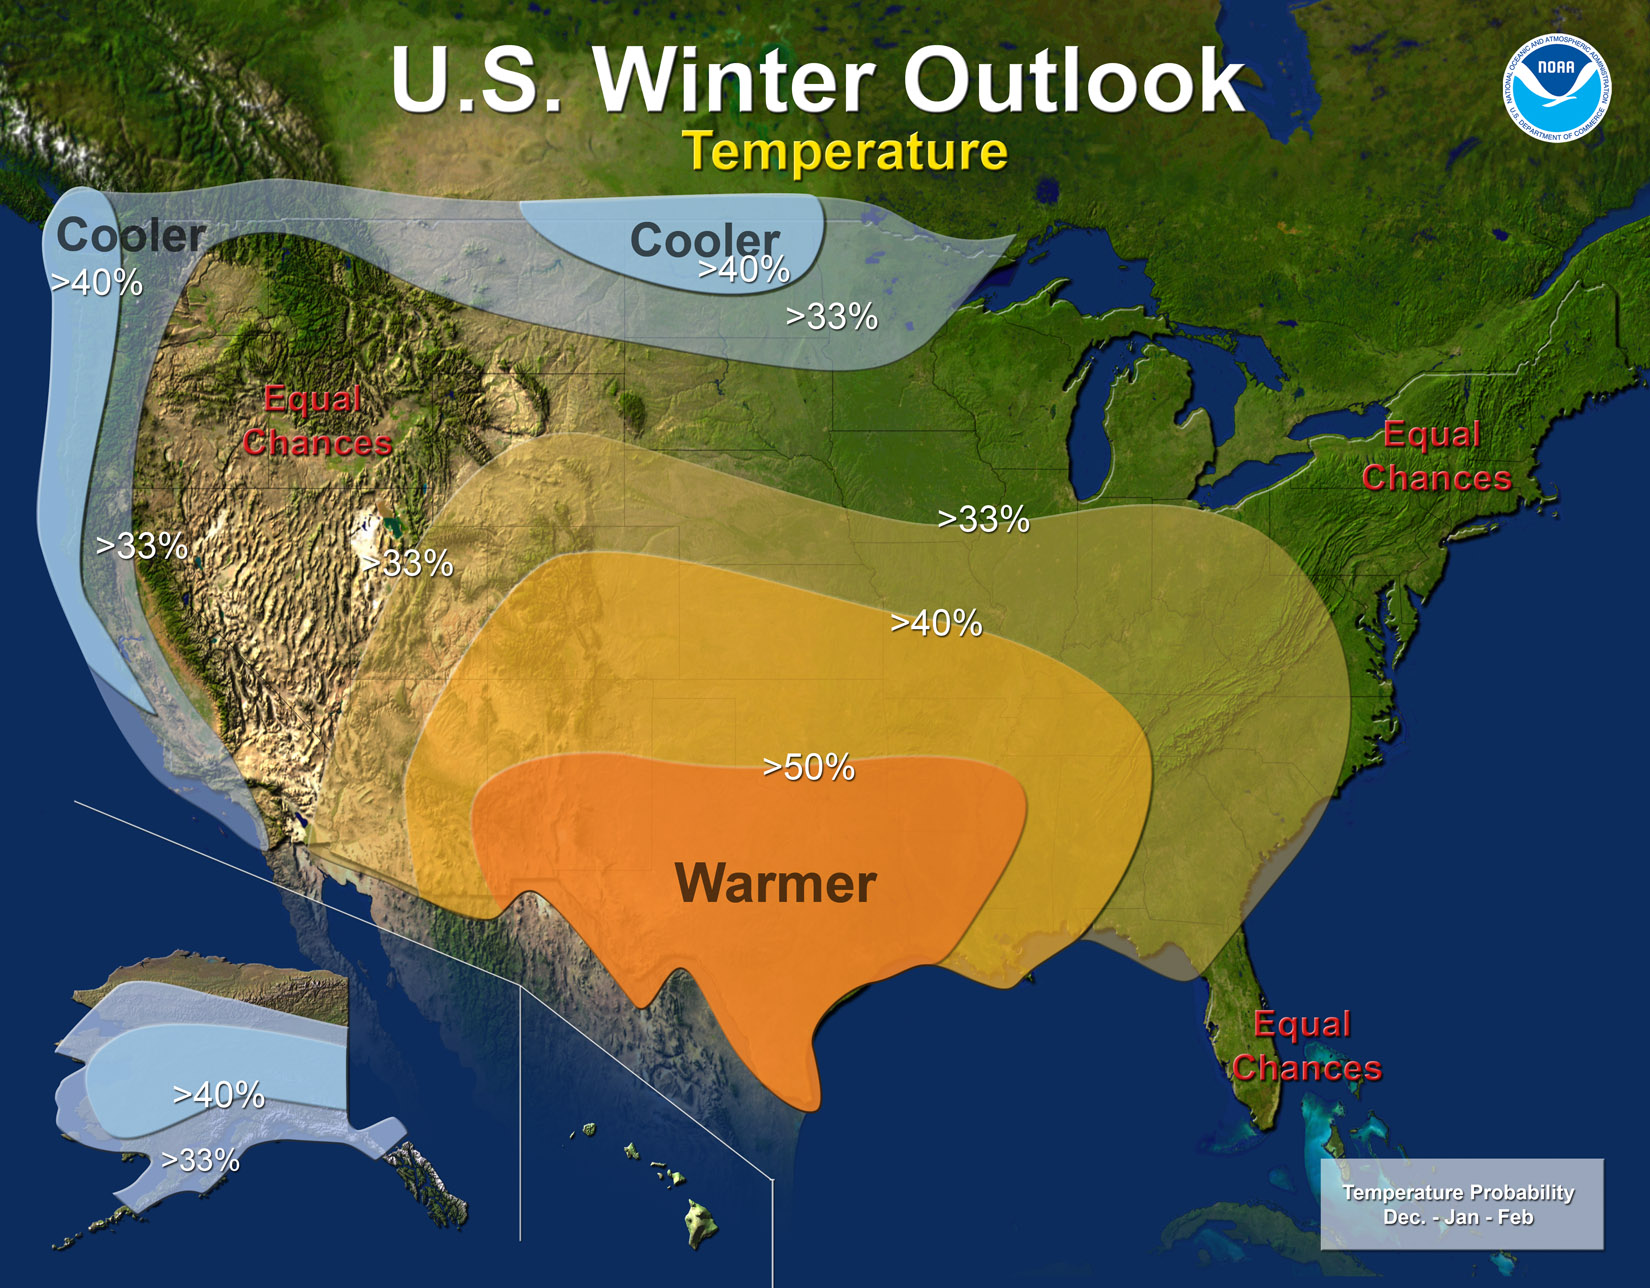 winter outlook for temperature (NOAA)